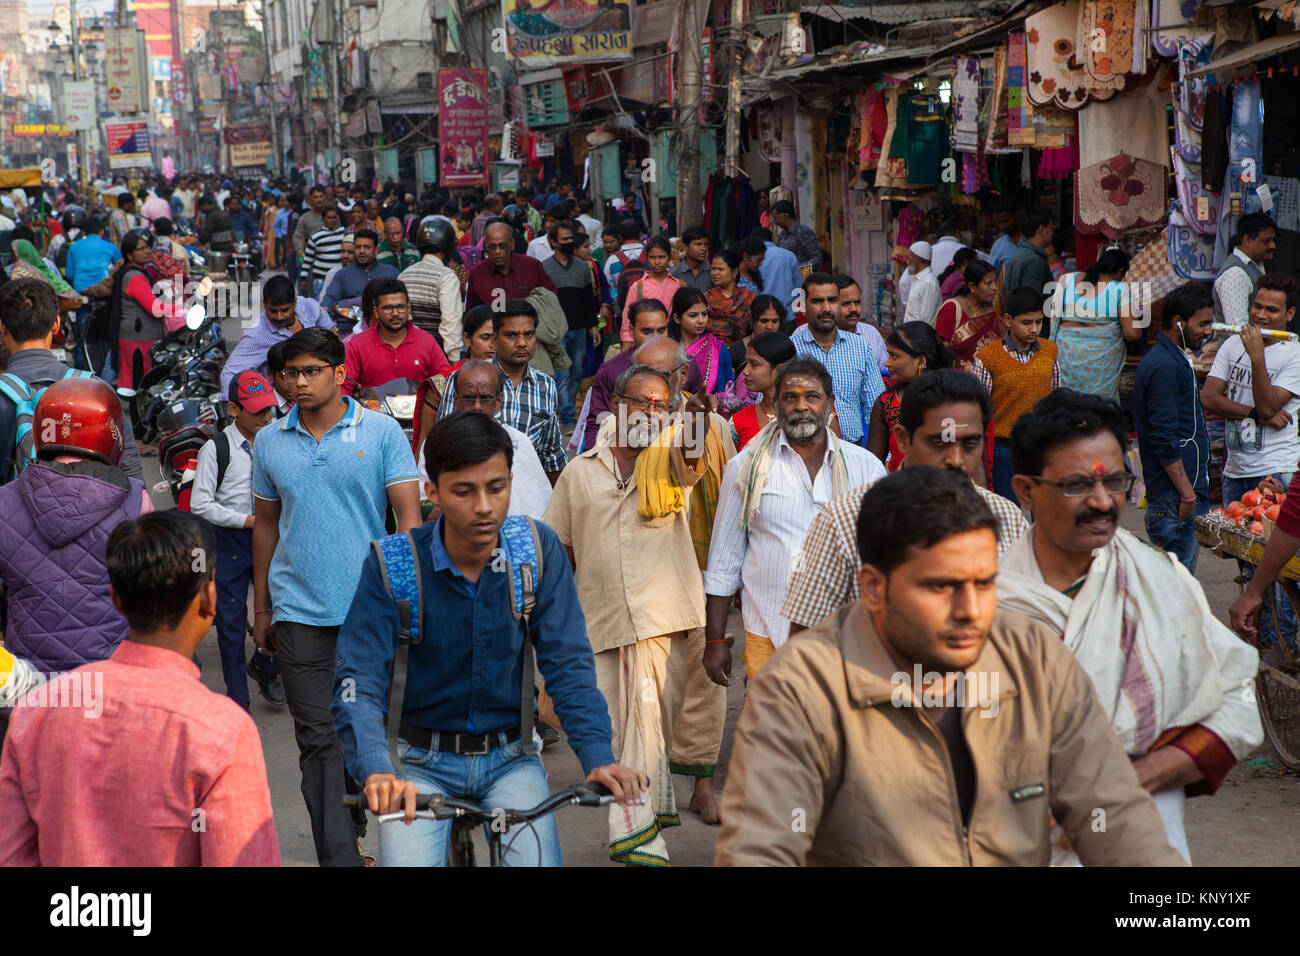 A busy and congested Dasashwamedh Ghat Road  in Varanasi, India - Stock Image